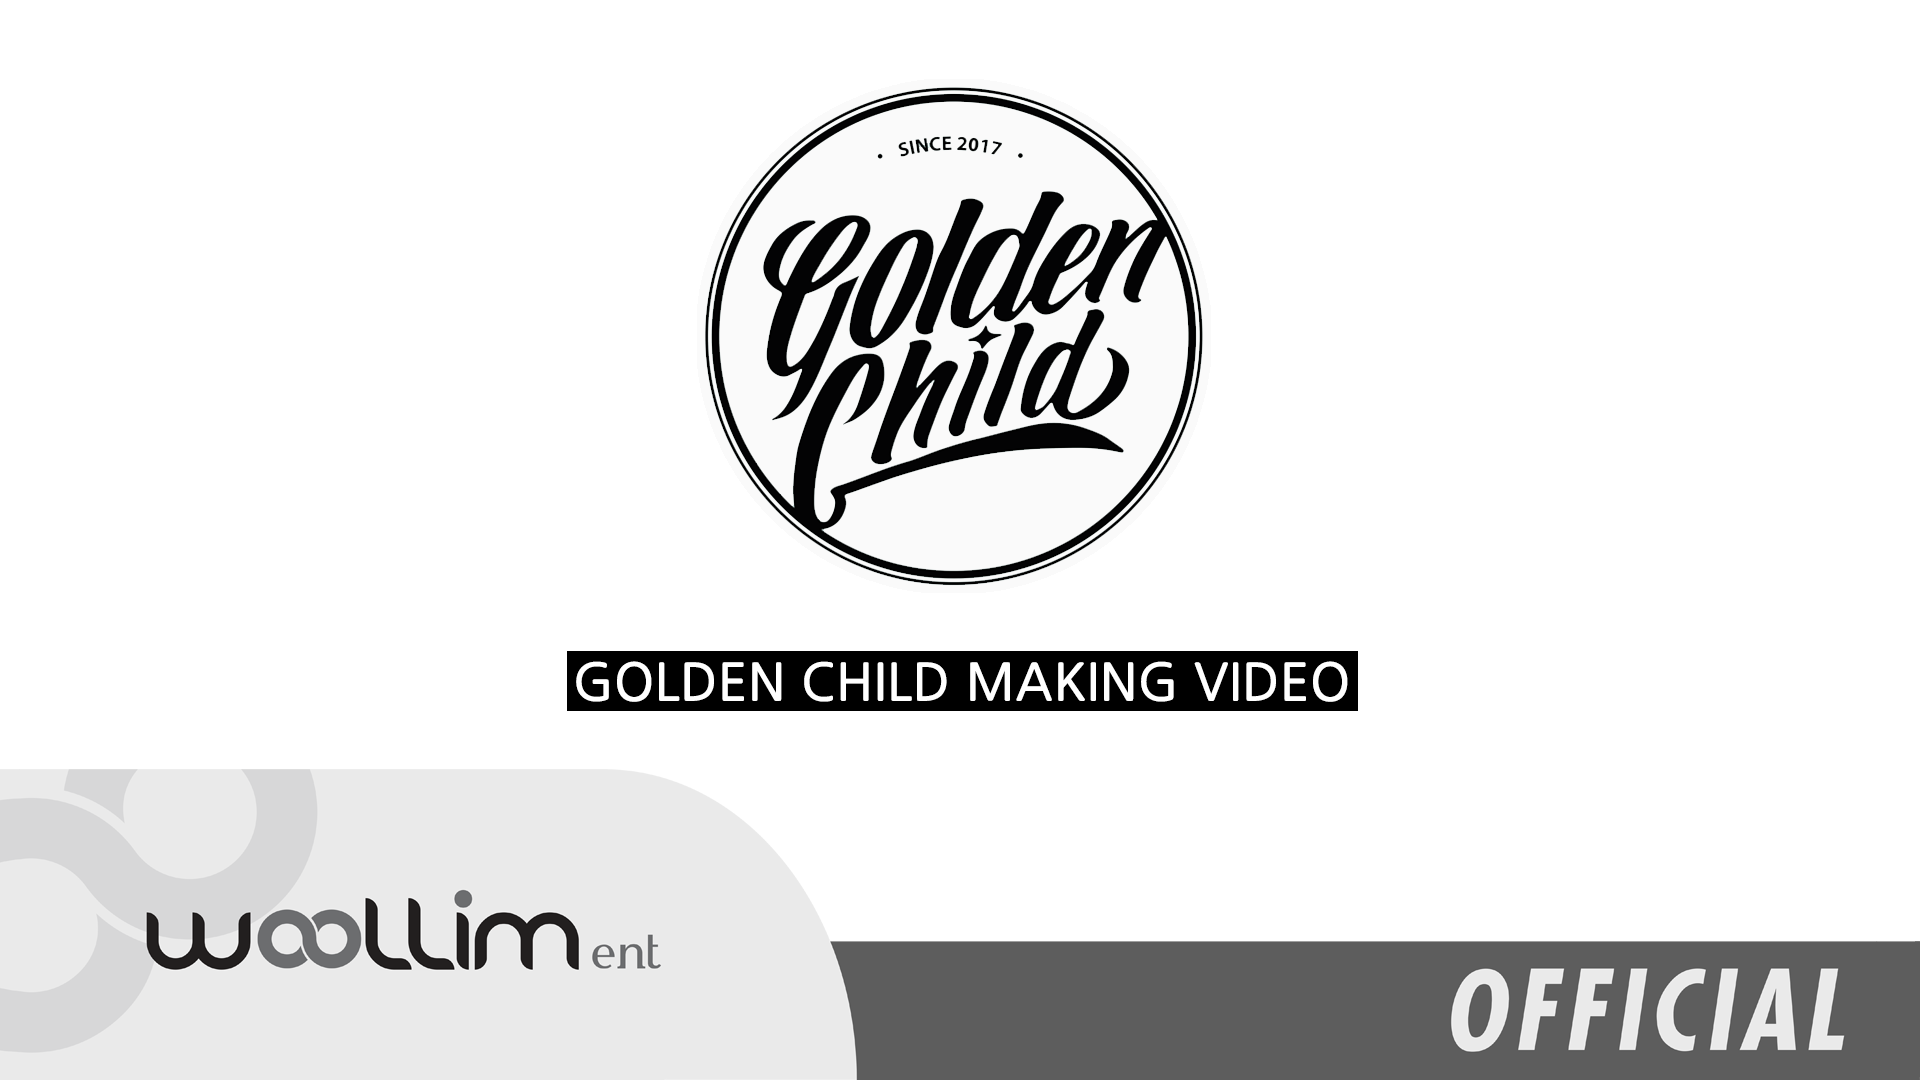 골든차일드(Golden Child) Making Video #3